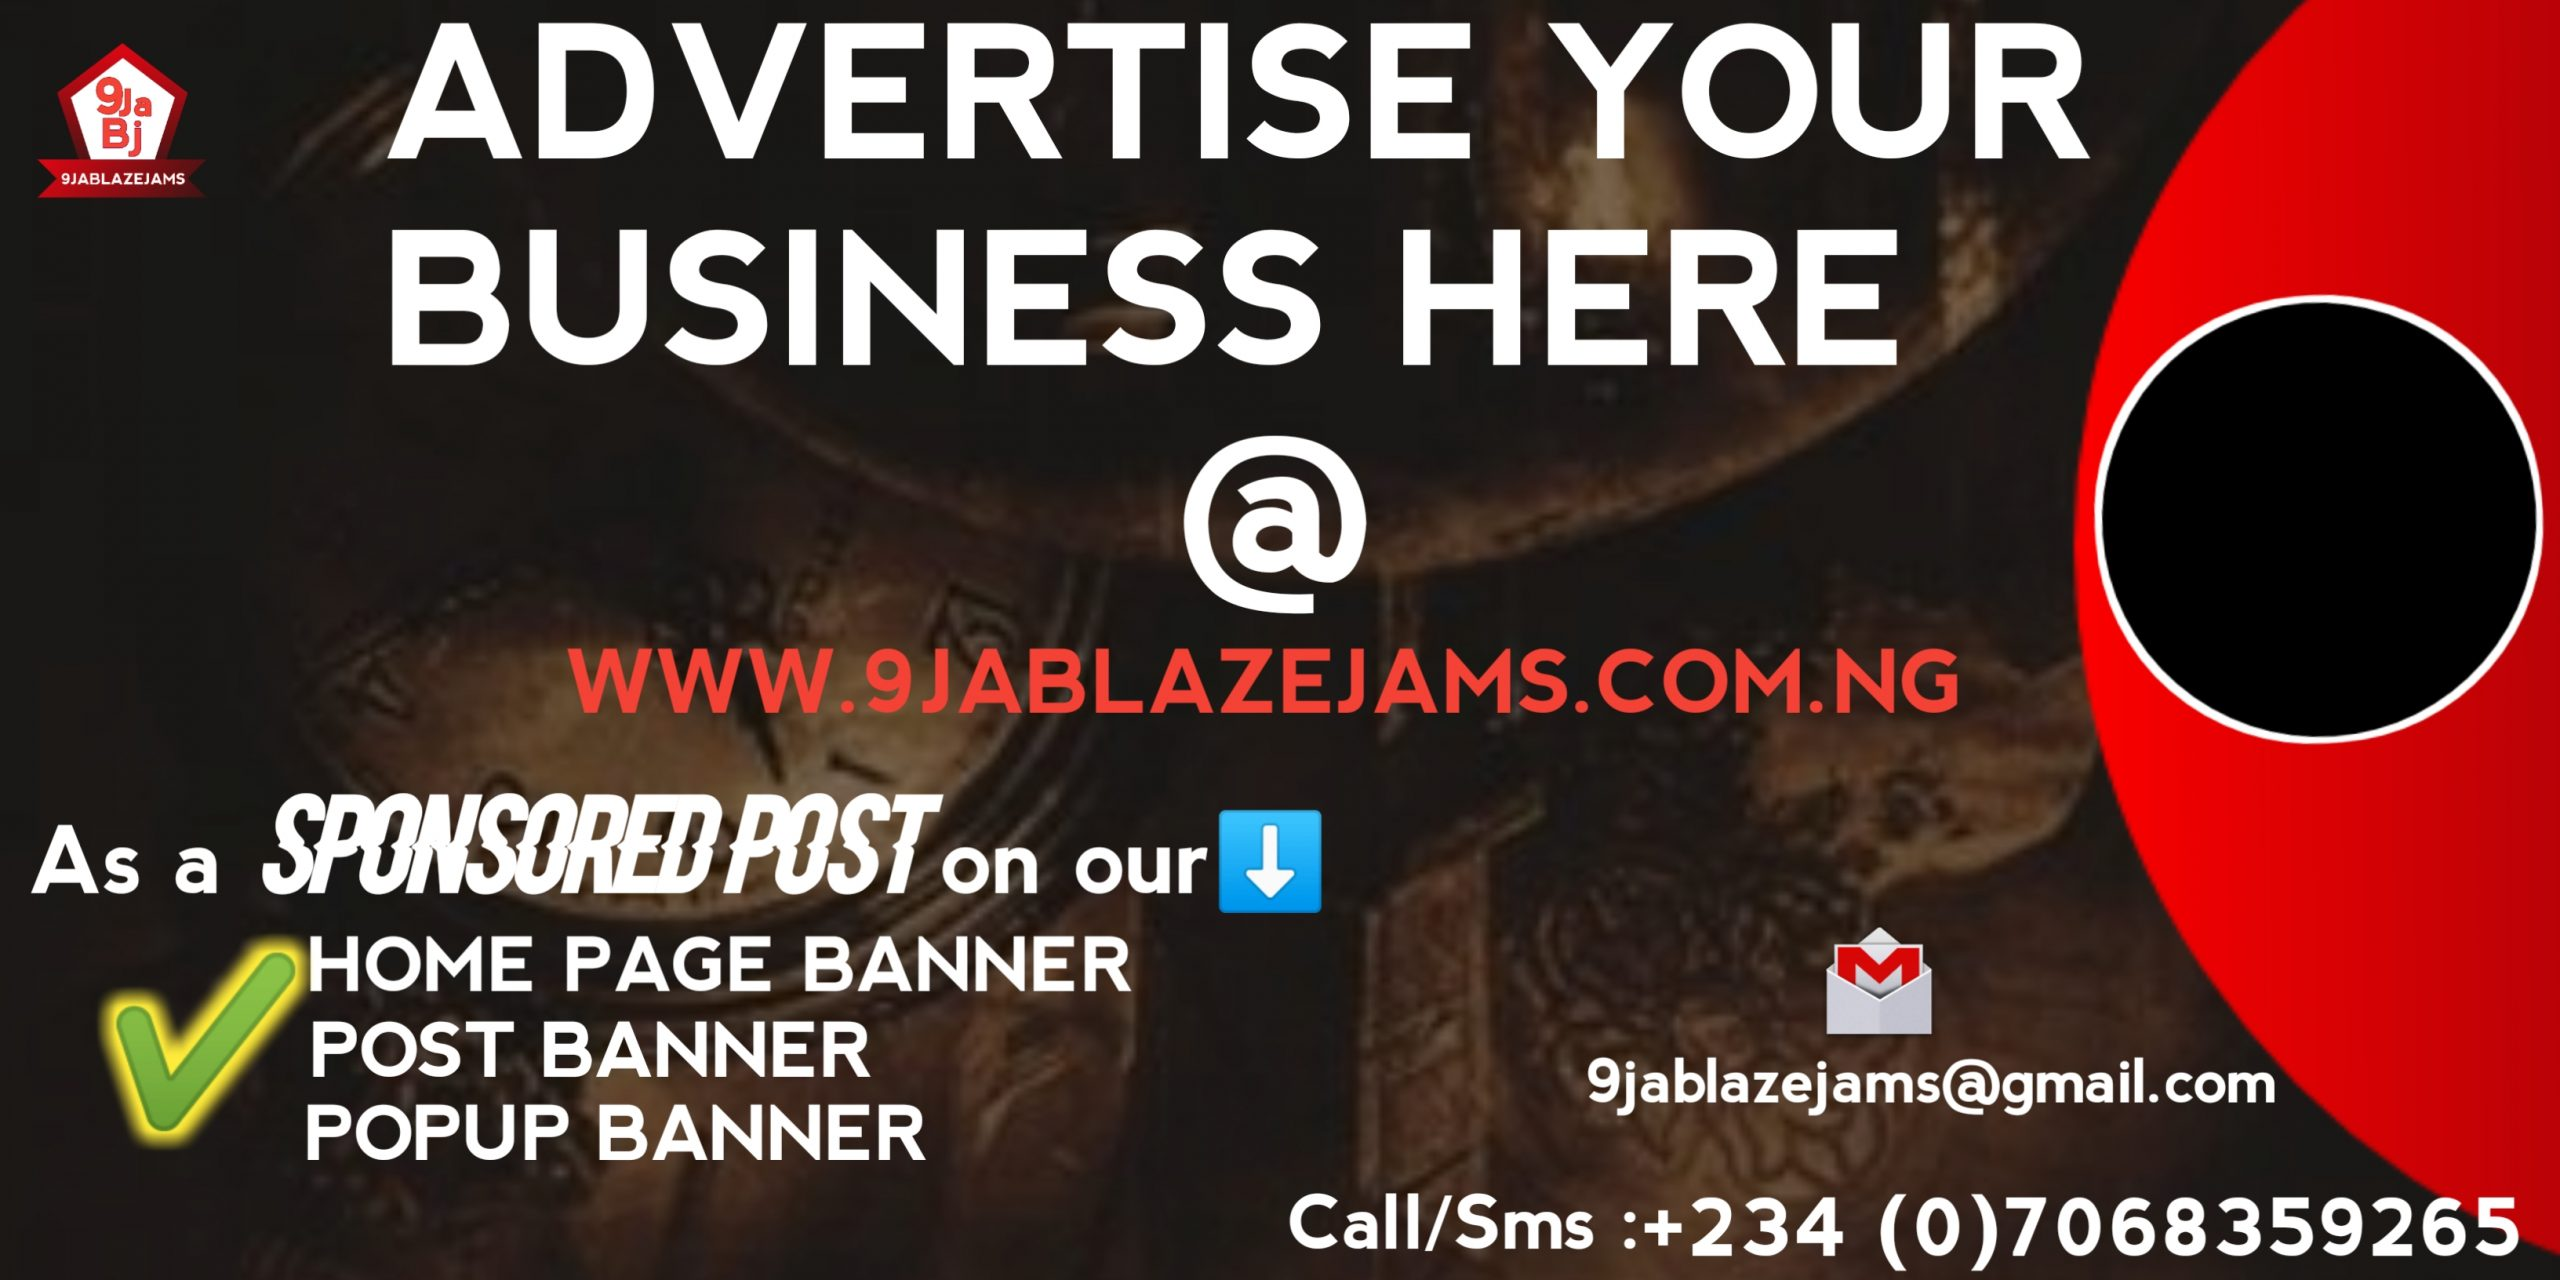 Get Your Business Known Online